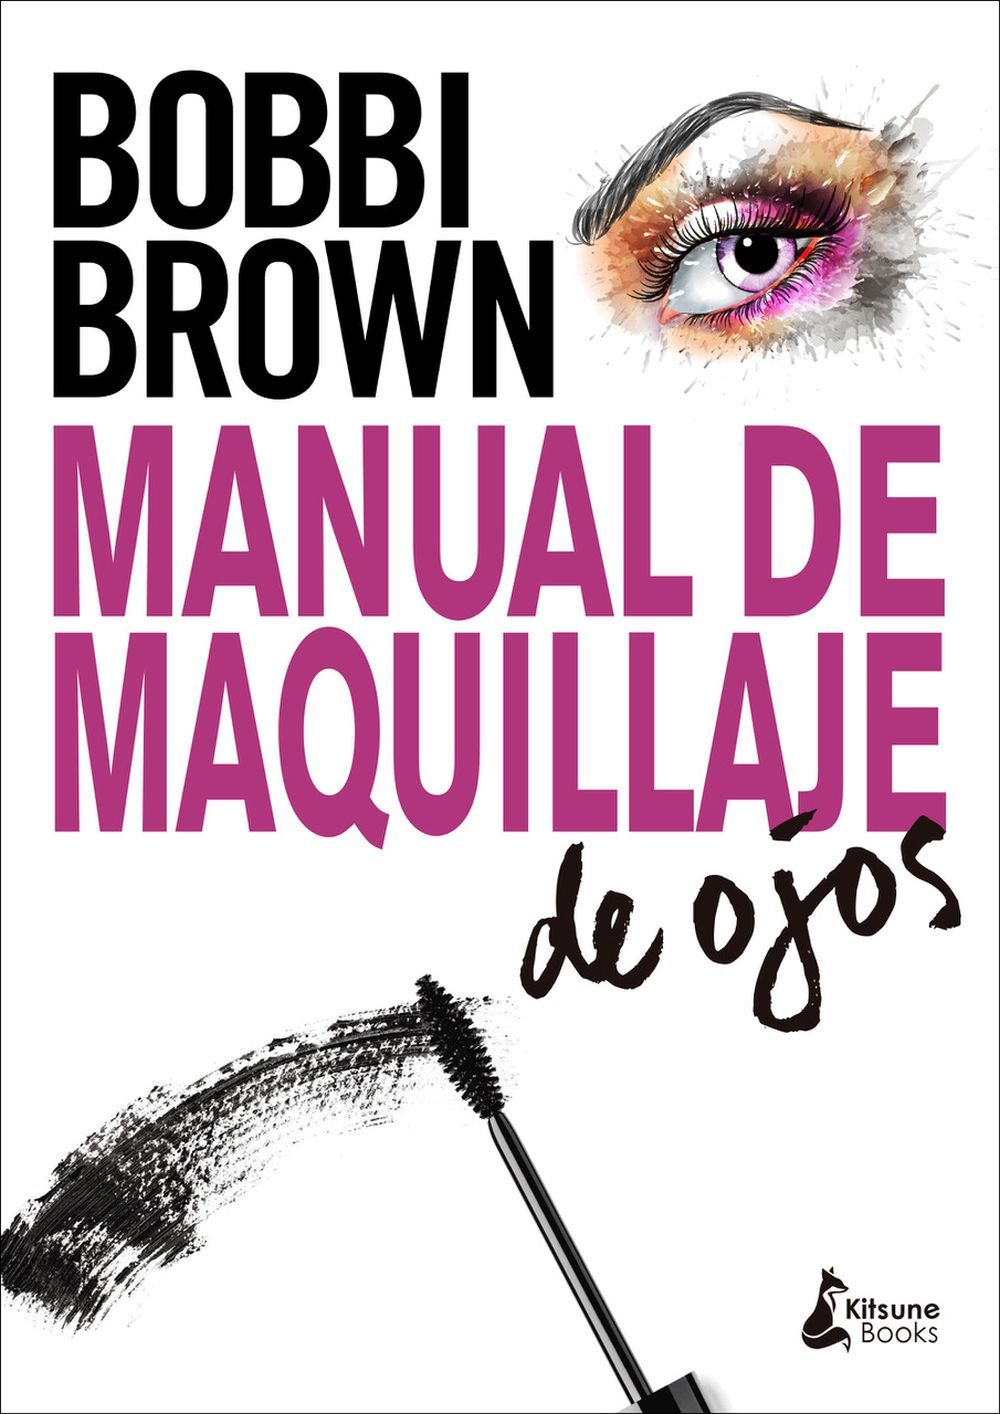 Manual de maquillaje de Bobbi Brown (Ed. Kitsune Books).